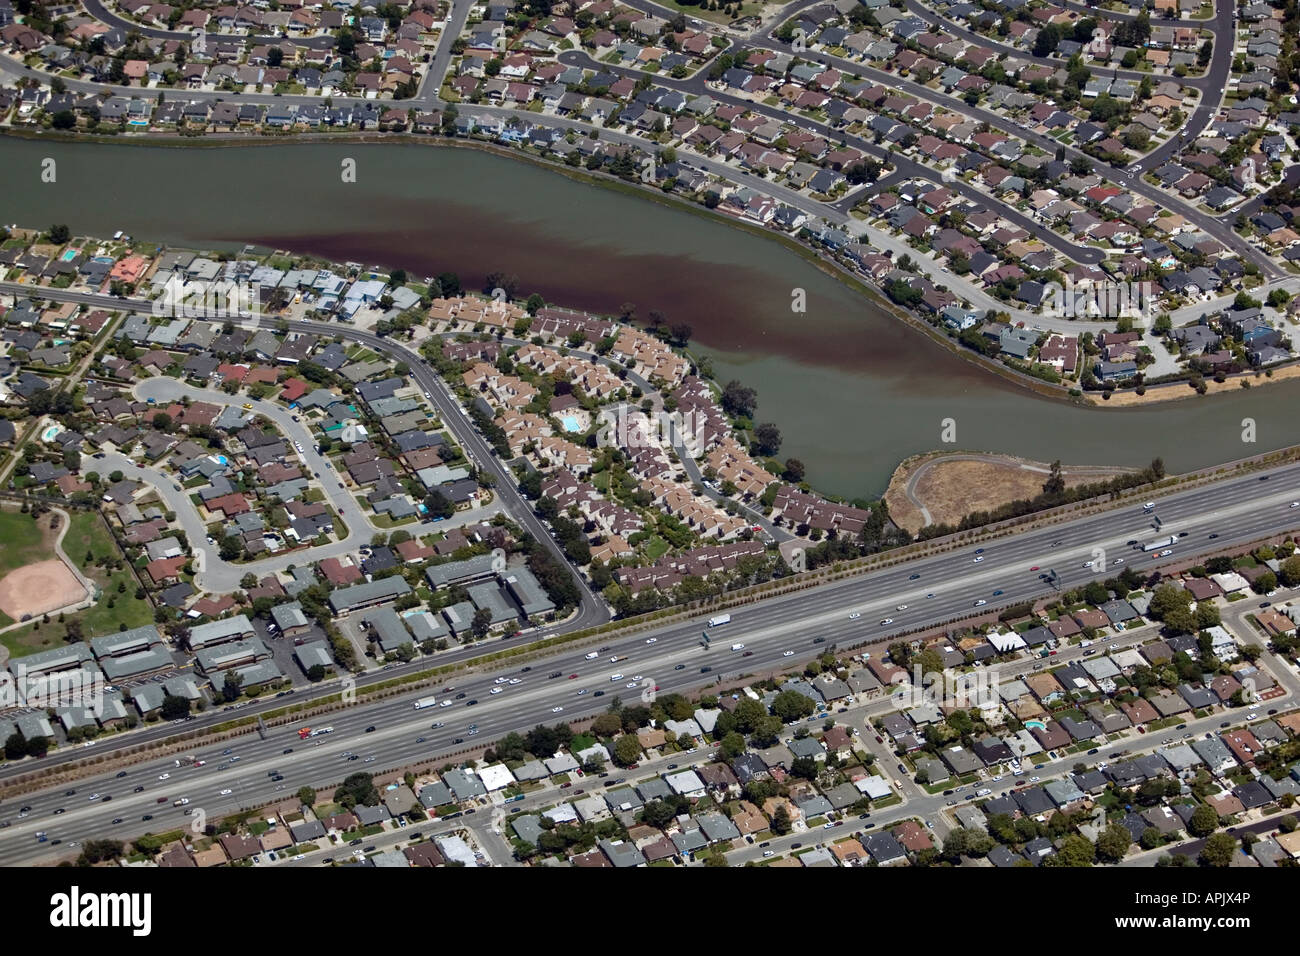 aerial view above water pollution Foster City California San Francisco bay at highway 101 - Stock Image